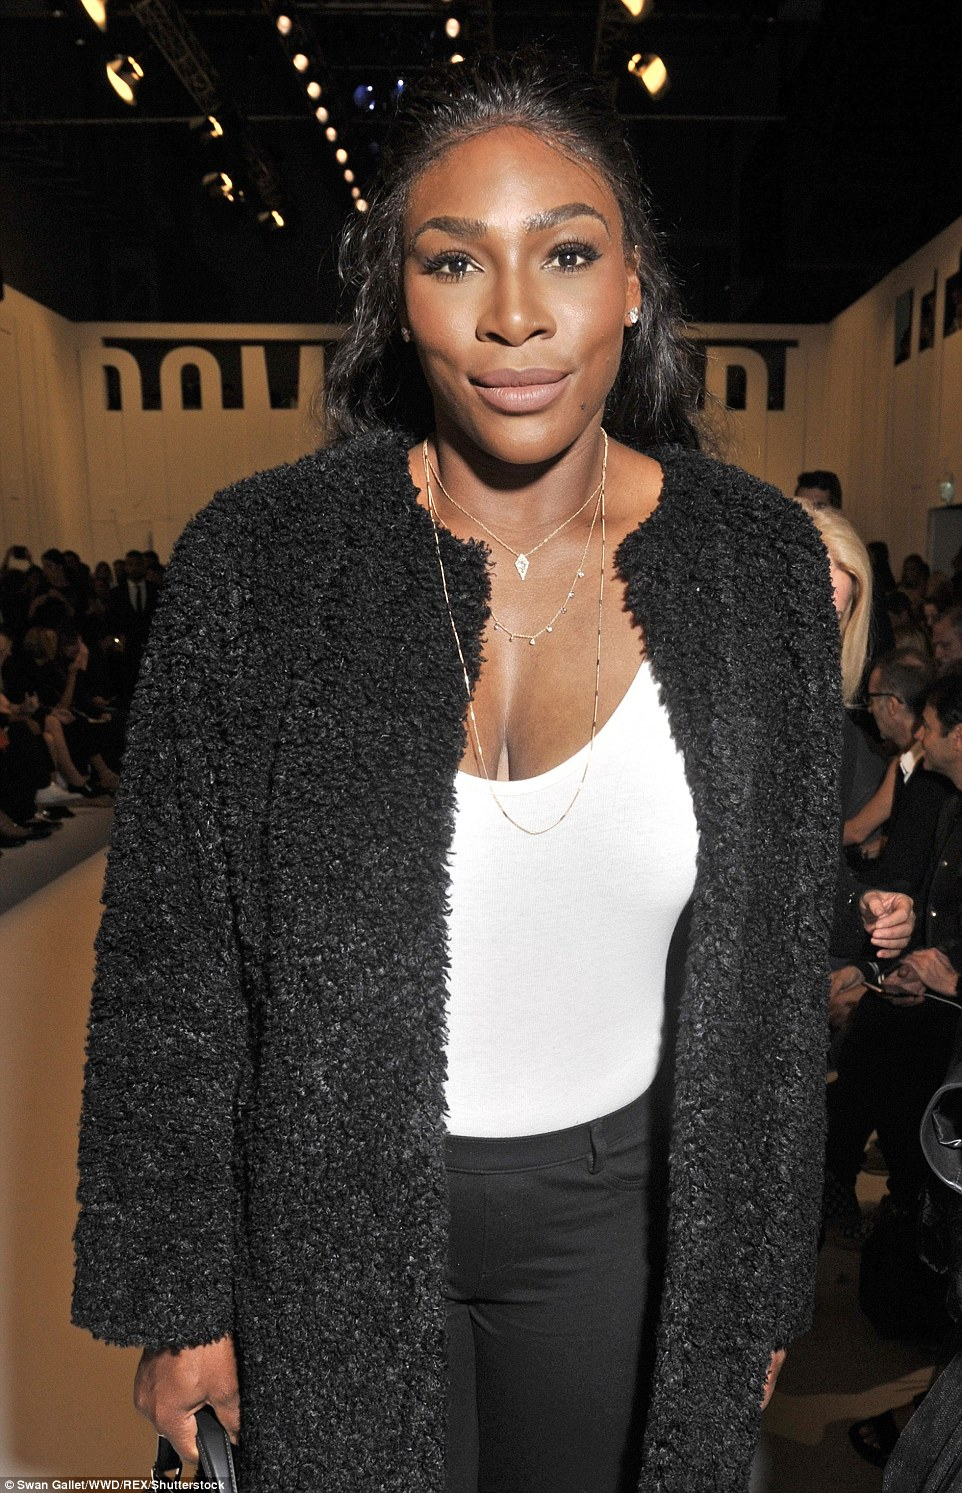 Shine bright like a diamond: A series of necklaces and a pair of diamond earrings gave her chic ensemble a sparkly touch